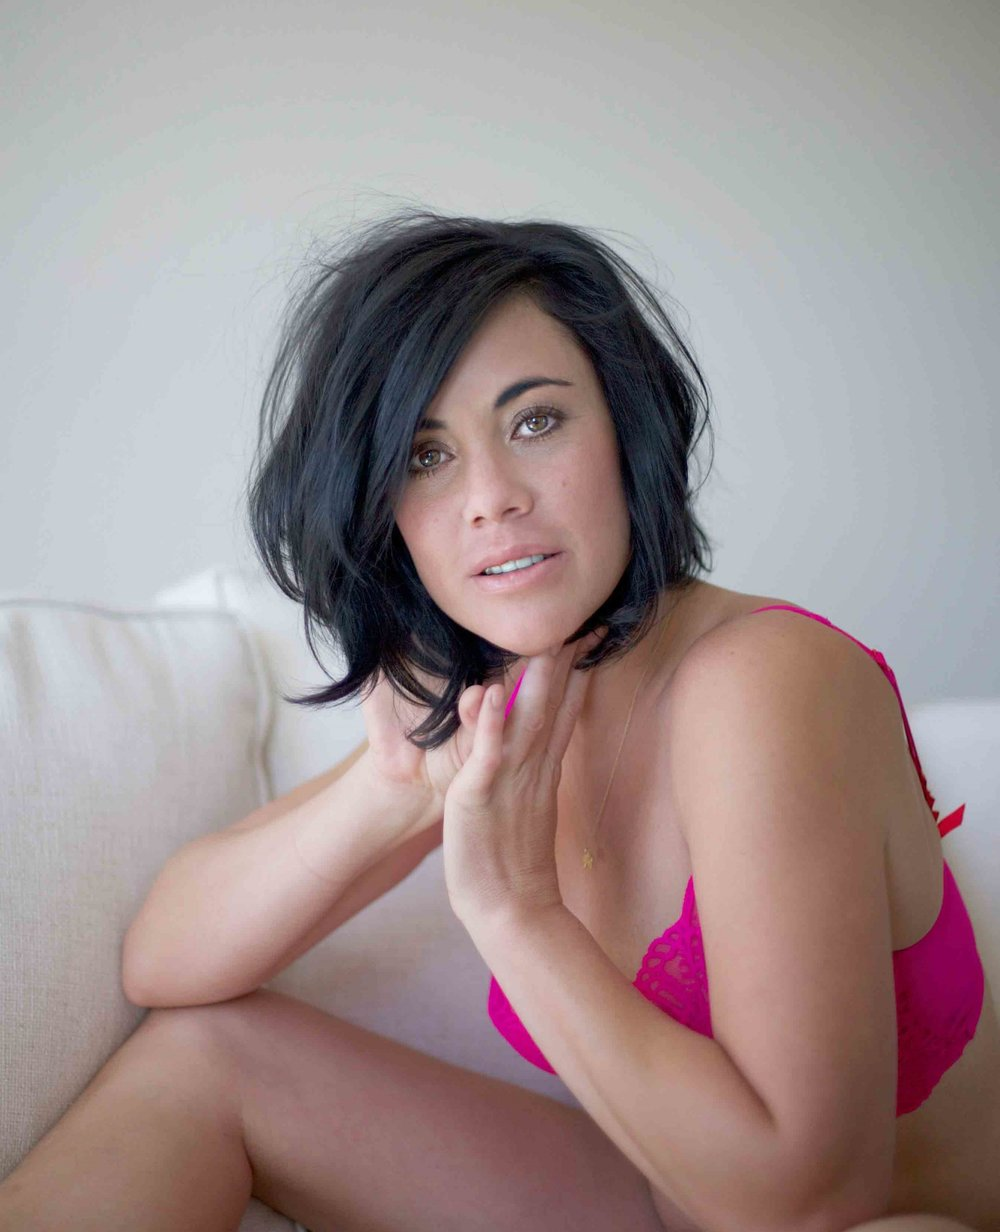 Beautiful dark haired girl posing in pink bra for a boudoir photo shoot.